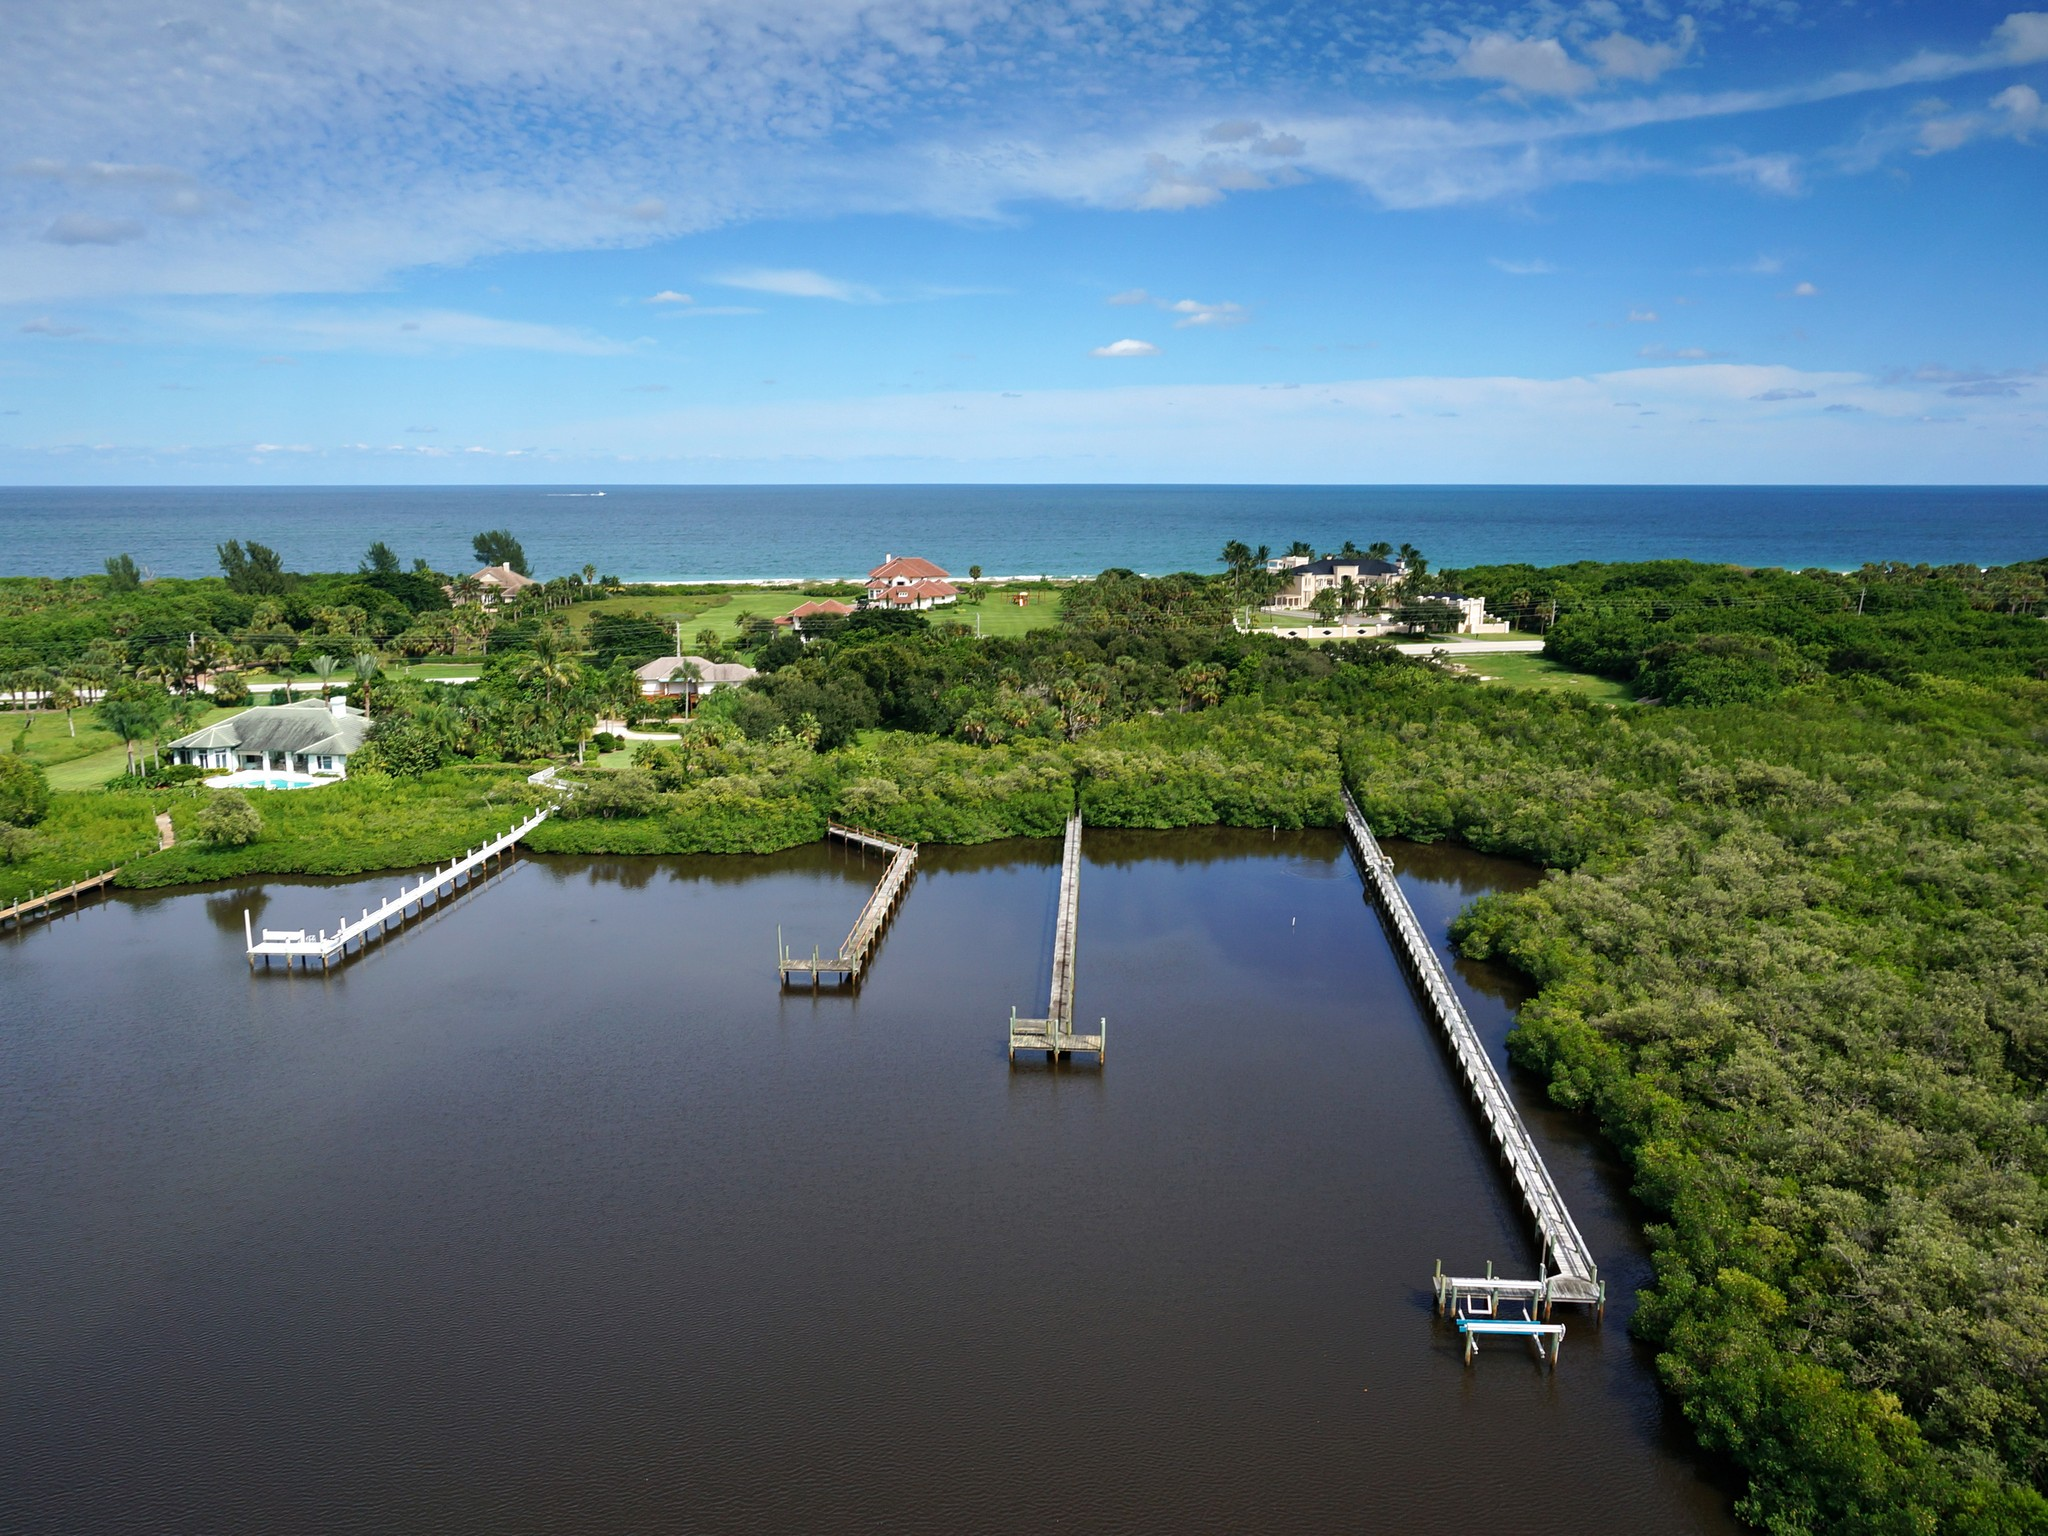 토지 용 매매 에 Riverfront Homesite 2135 South Highway A1A Vero Beach, 플로리다 32963 미국